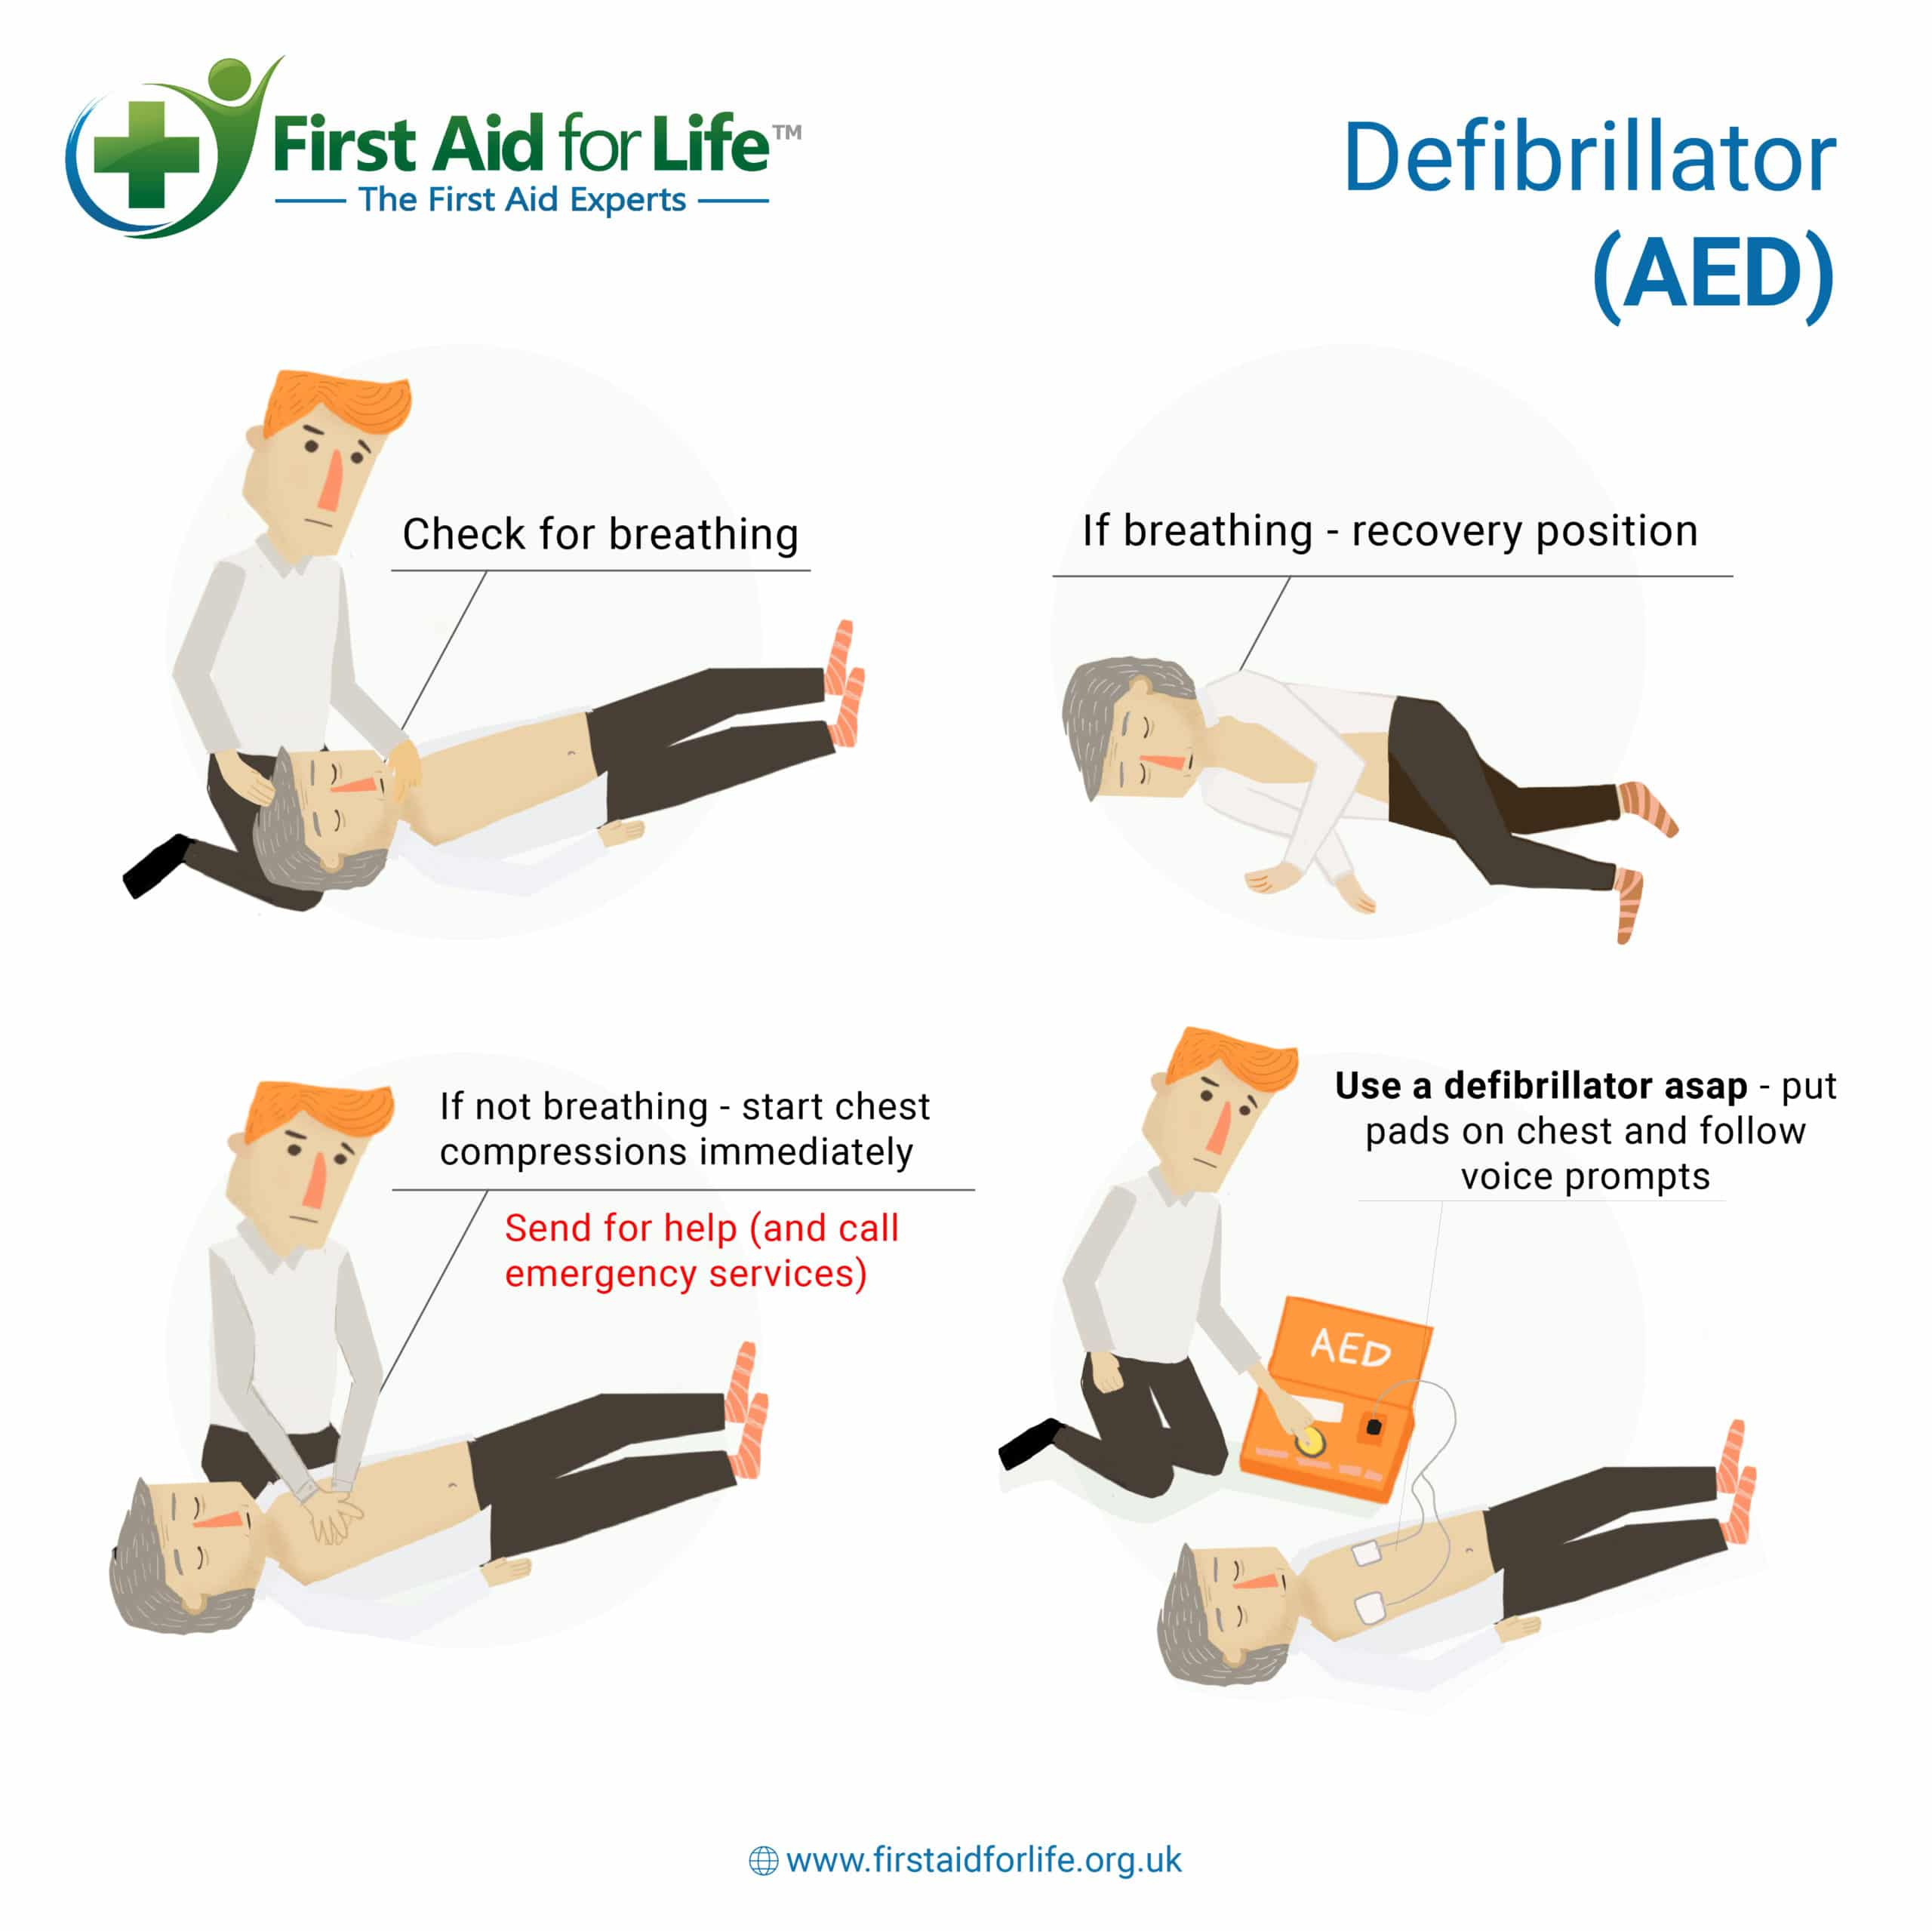 All about defibrillators – what they are and how to use them